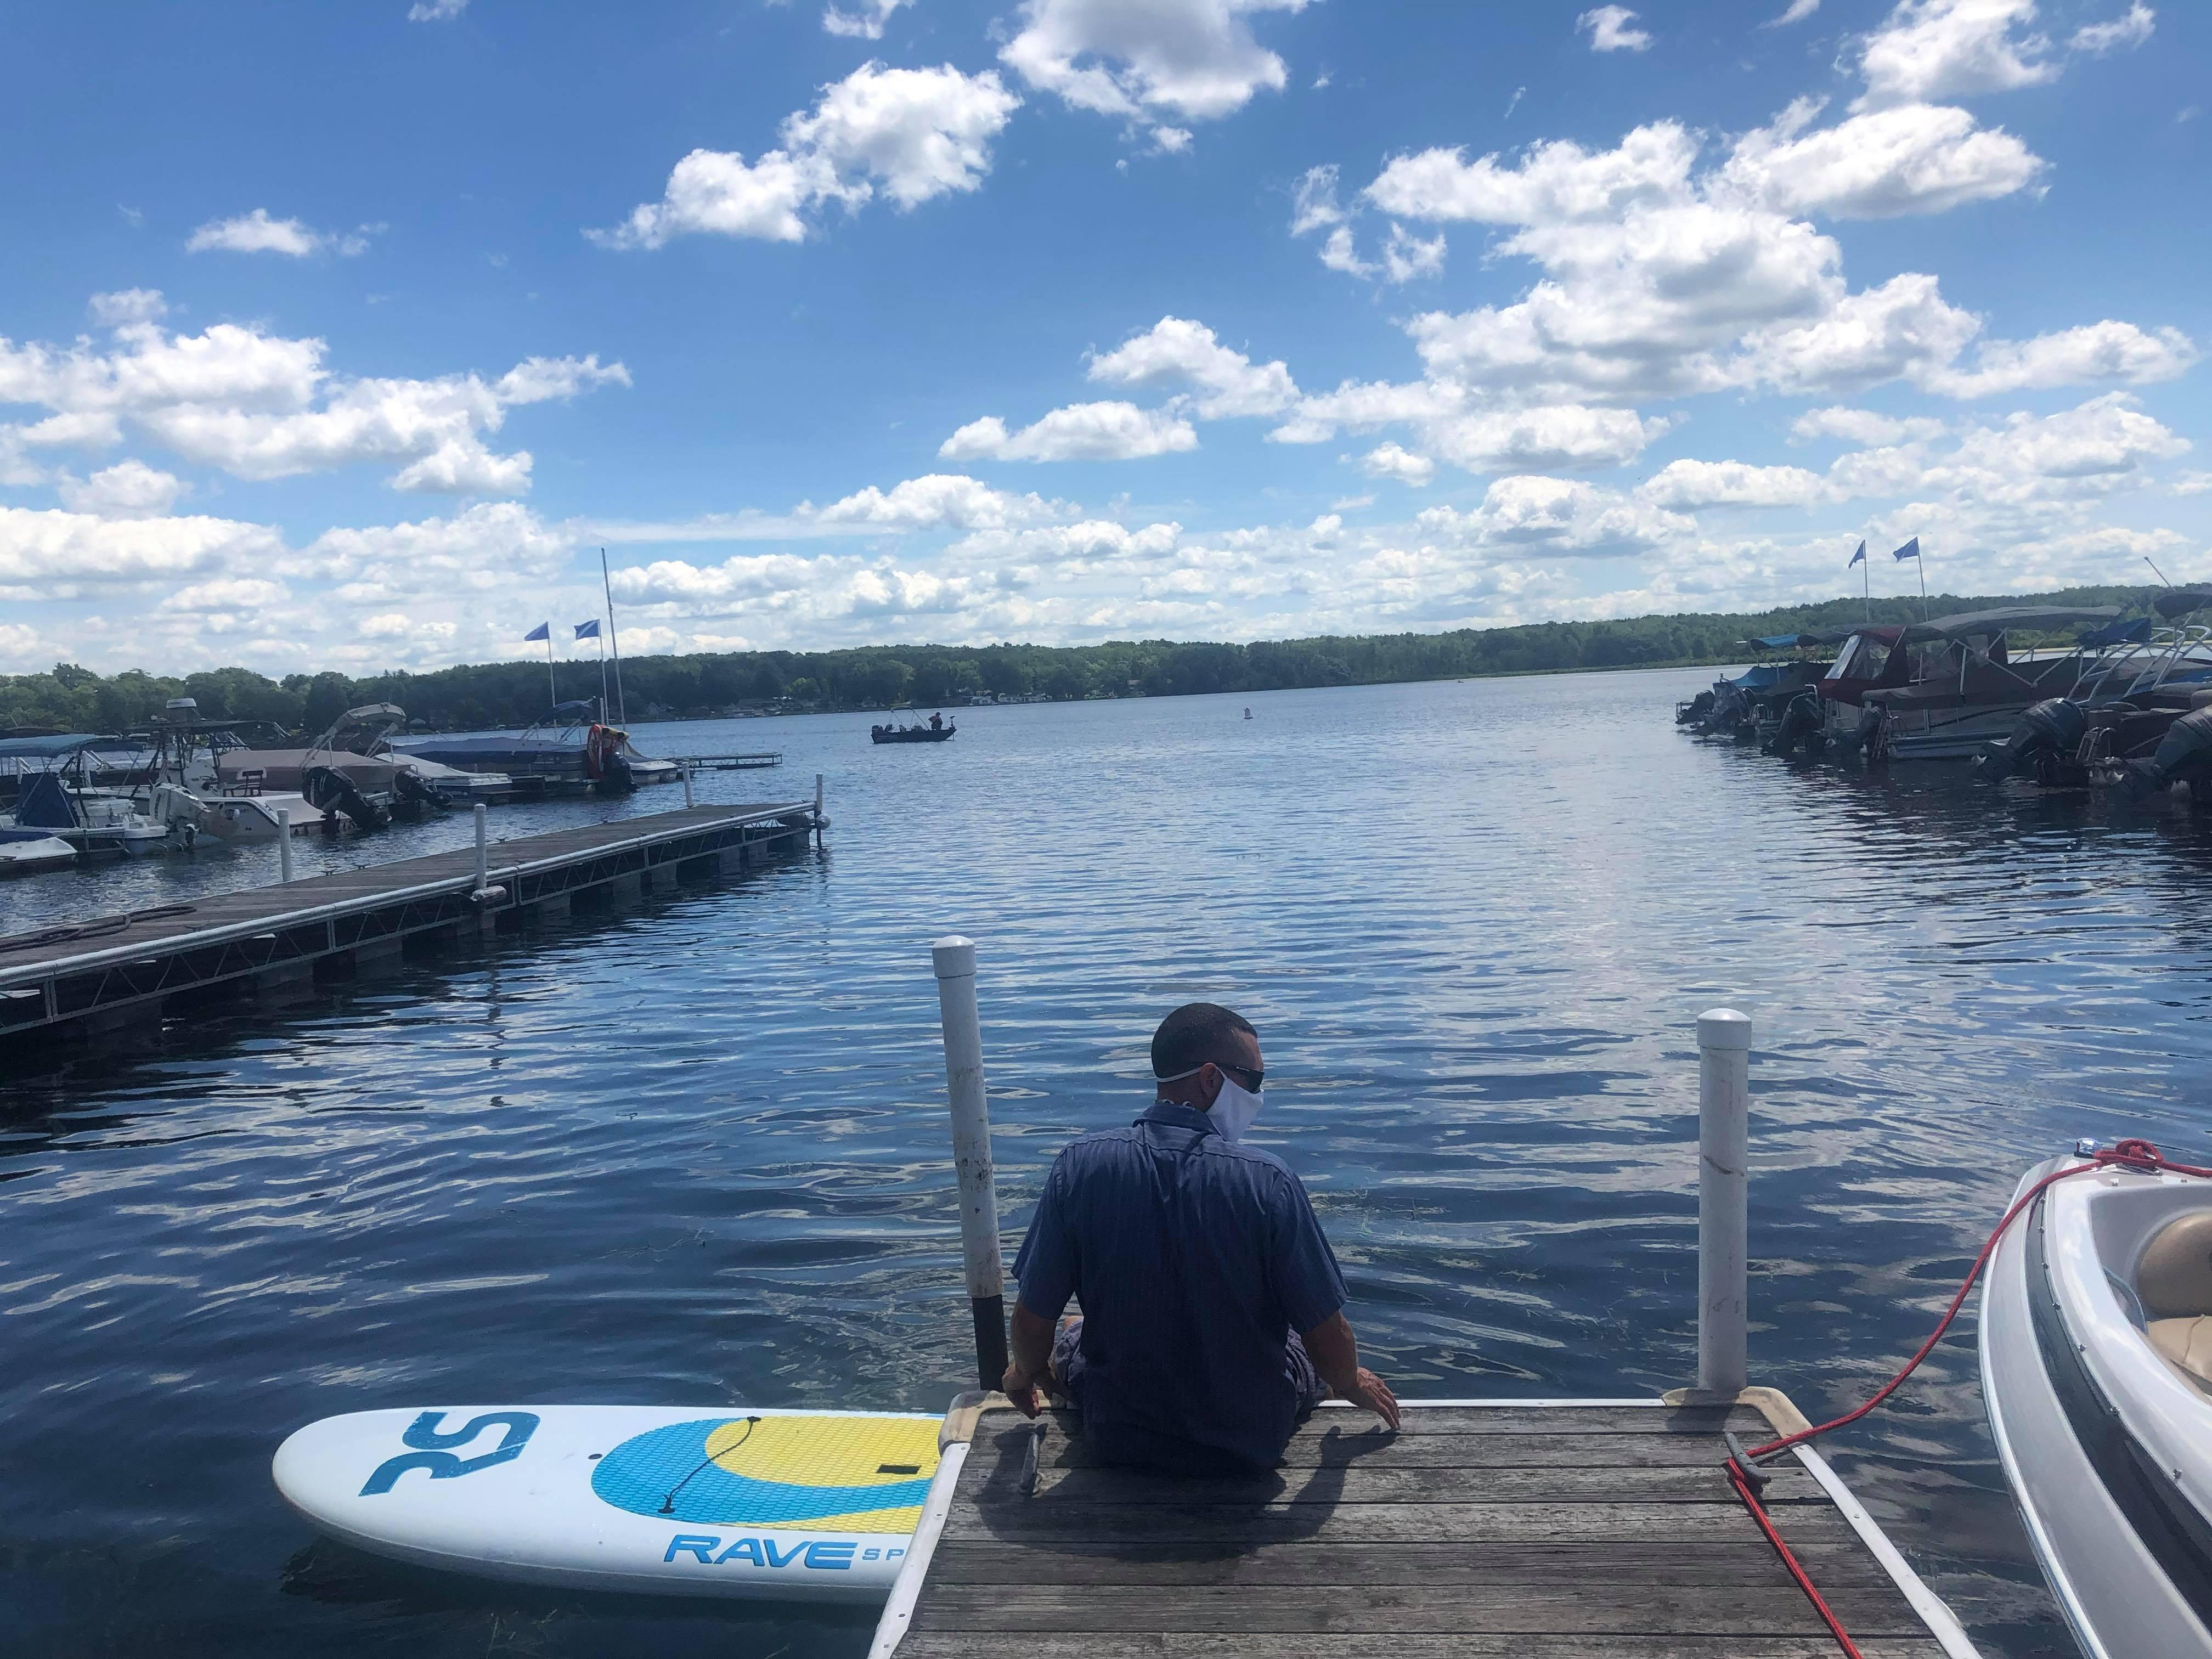 A staff member at Silver Lake Marine assists with our launch